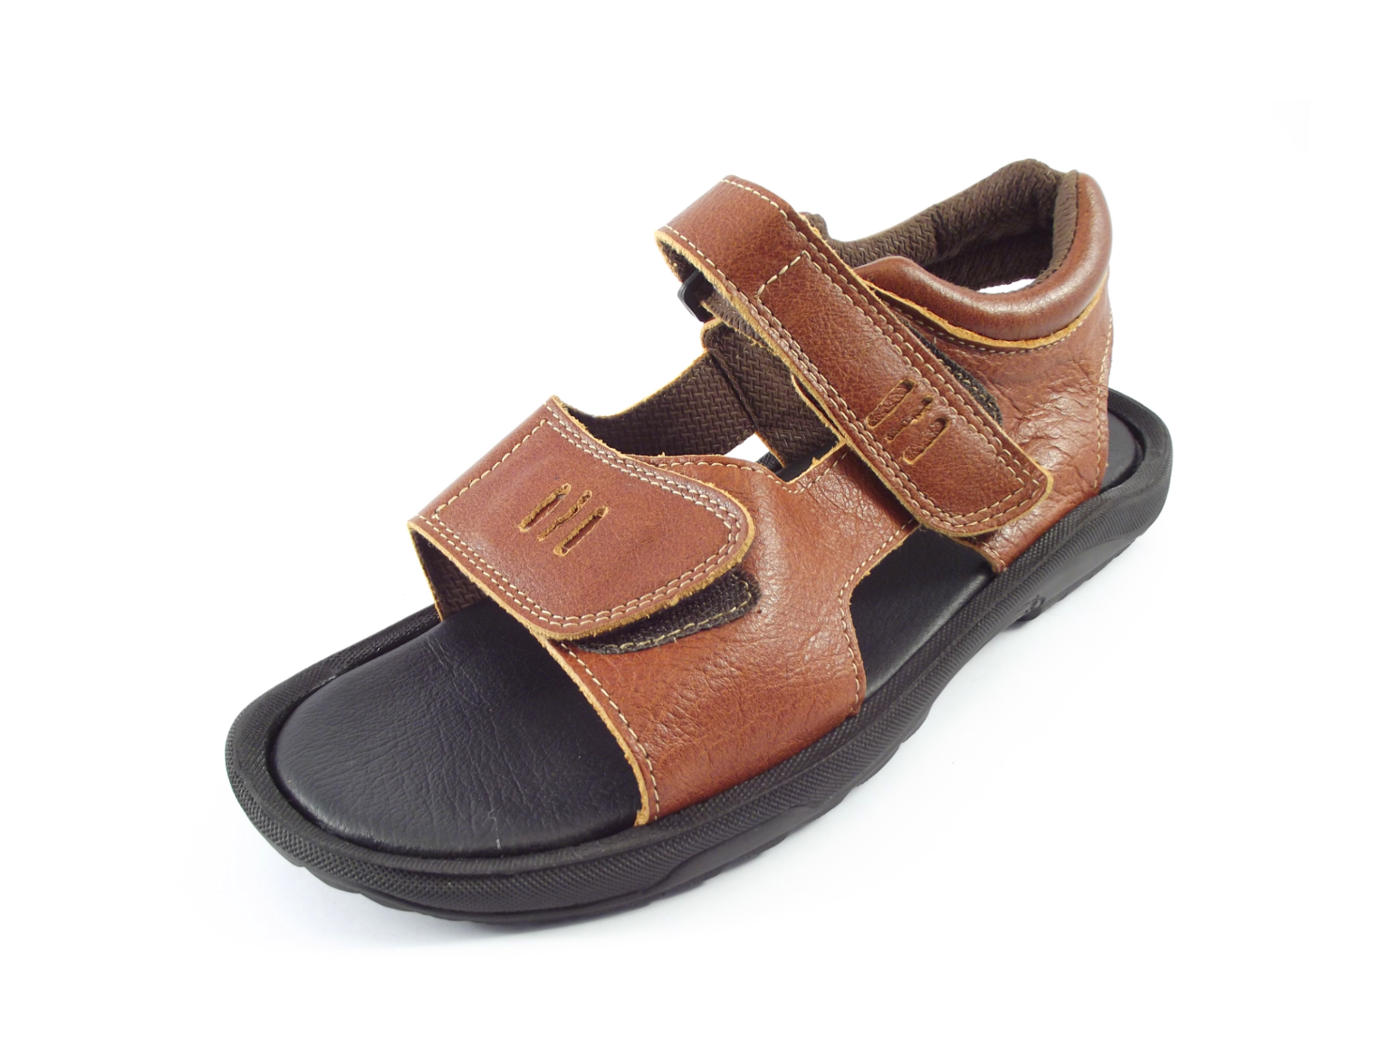 5502b9fe1 Full-grain genuine leather men s outdoor sandals